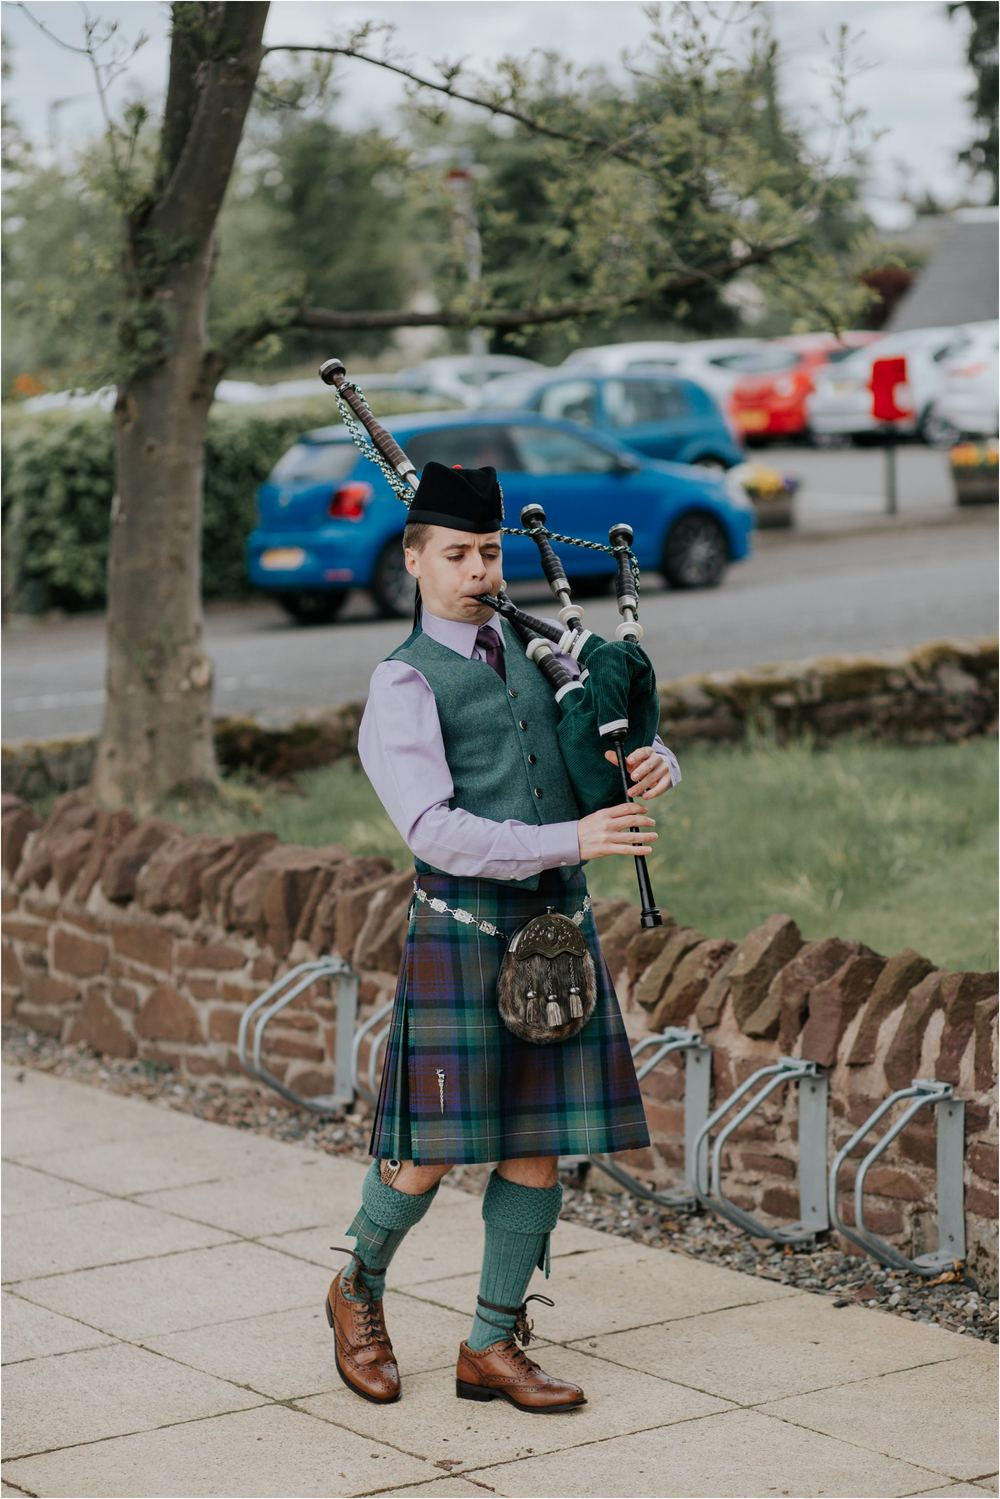 Photography 78 - Glasgow Wedding Photographer - Fraser Thirza - Killearn Village Hall - Three Sisters Bake Wedding_0116.jpg